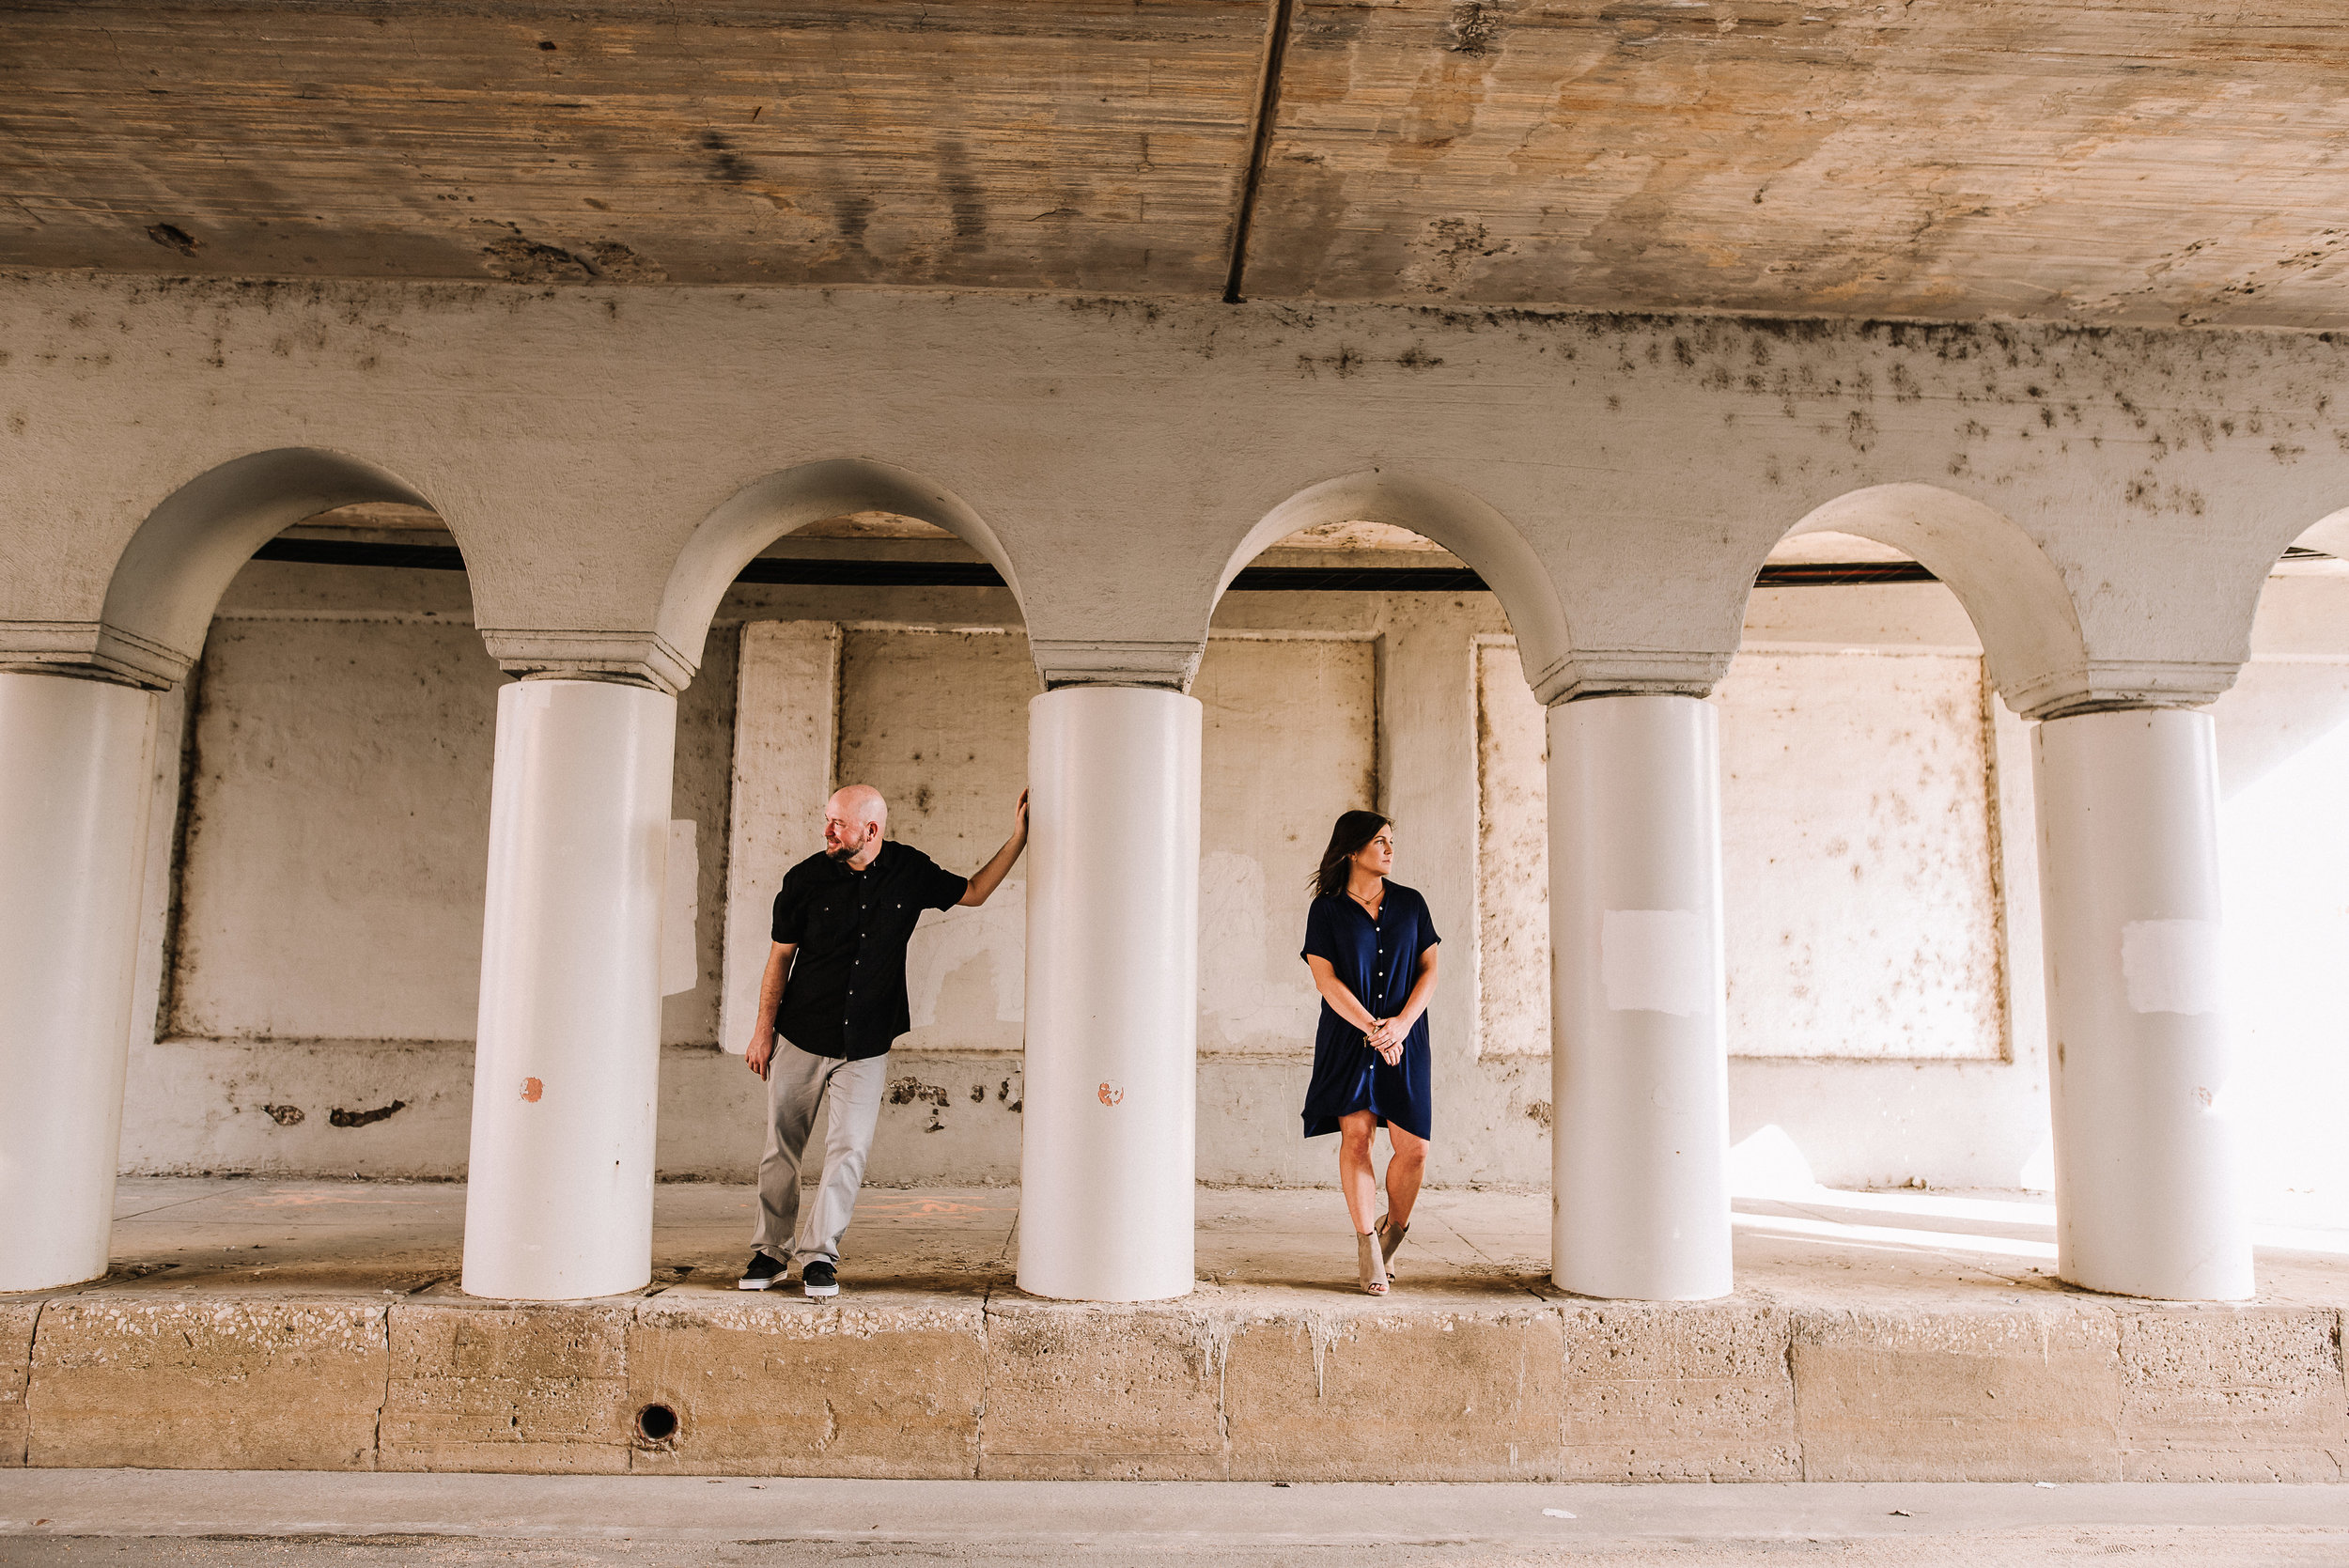 Melissa+Andy_Downtown-Memphis-Engagement-Session_Ashley-Benham-Photography-4825.jpg